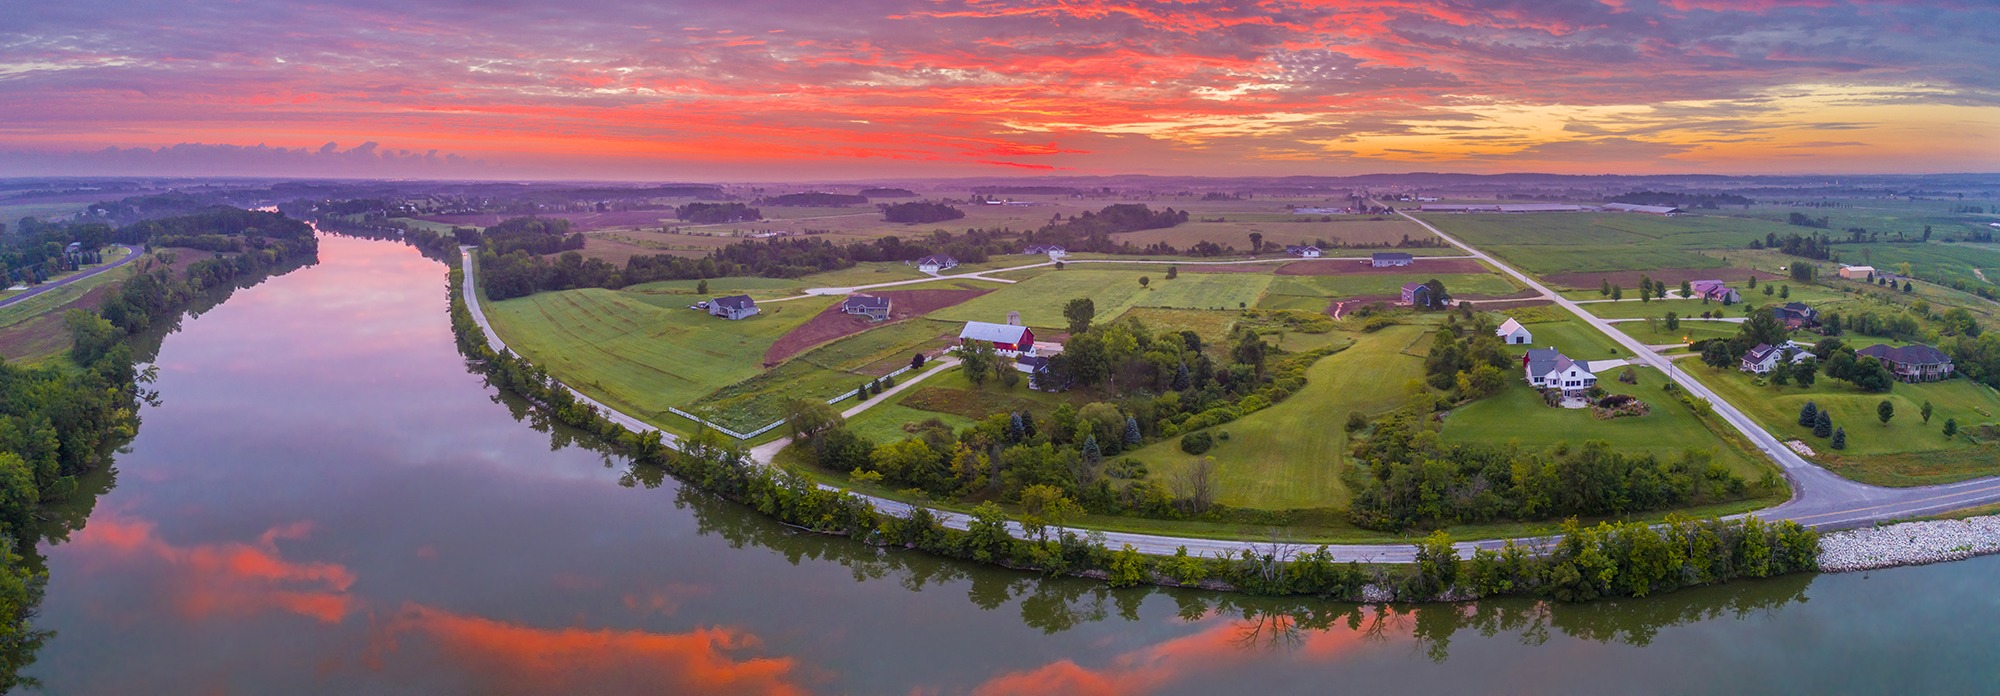 Red sky reflected in tranquil river at dawn, panoramic aerial view.